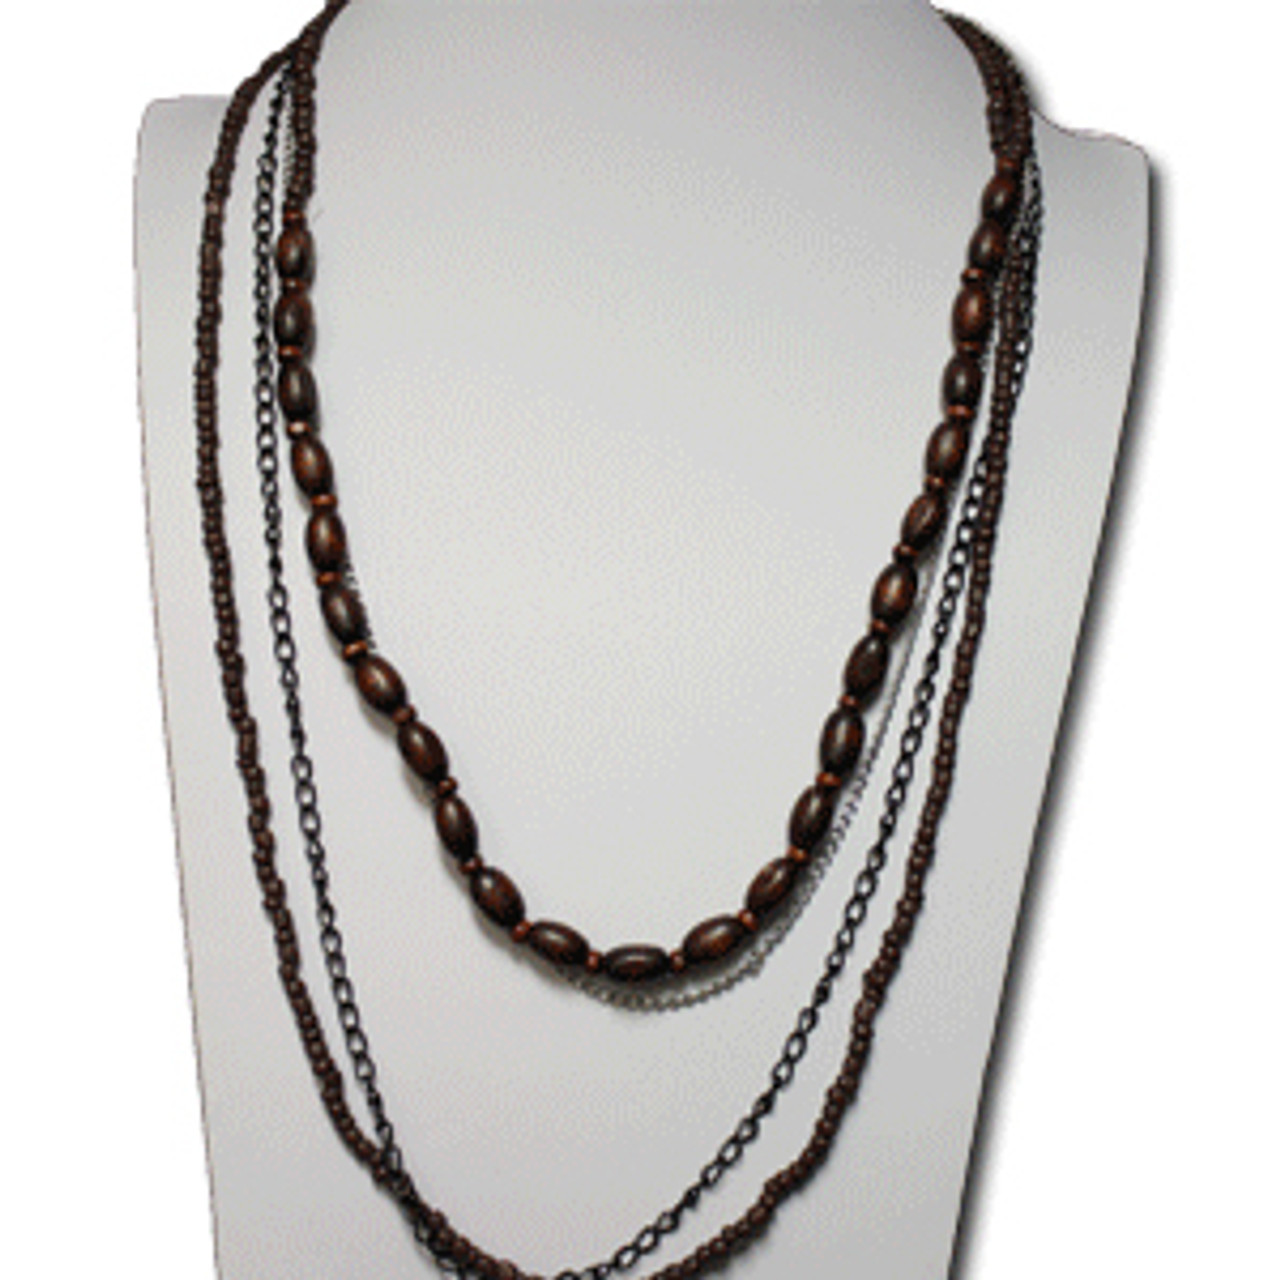 Cheap bohemian necklace and earring set